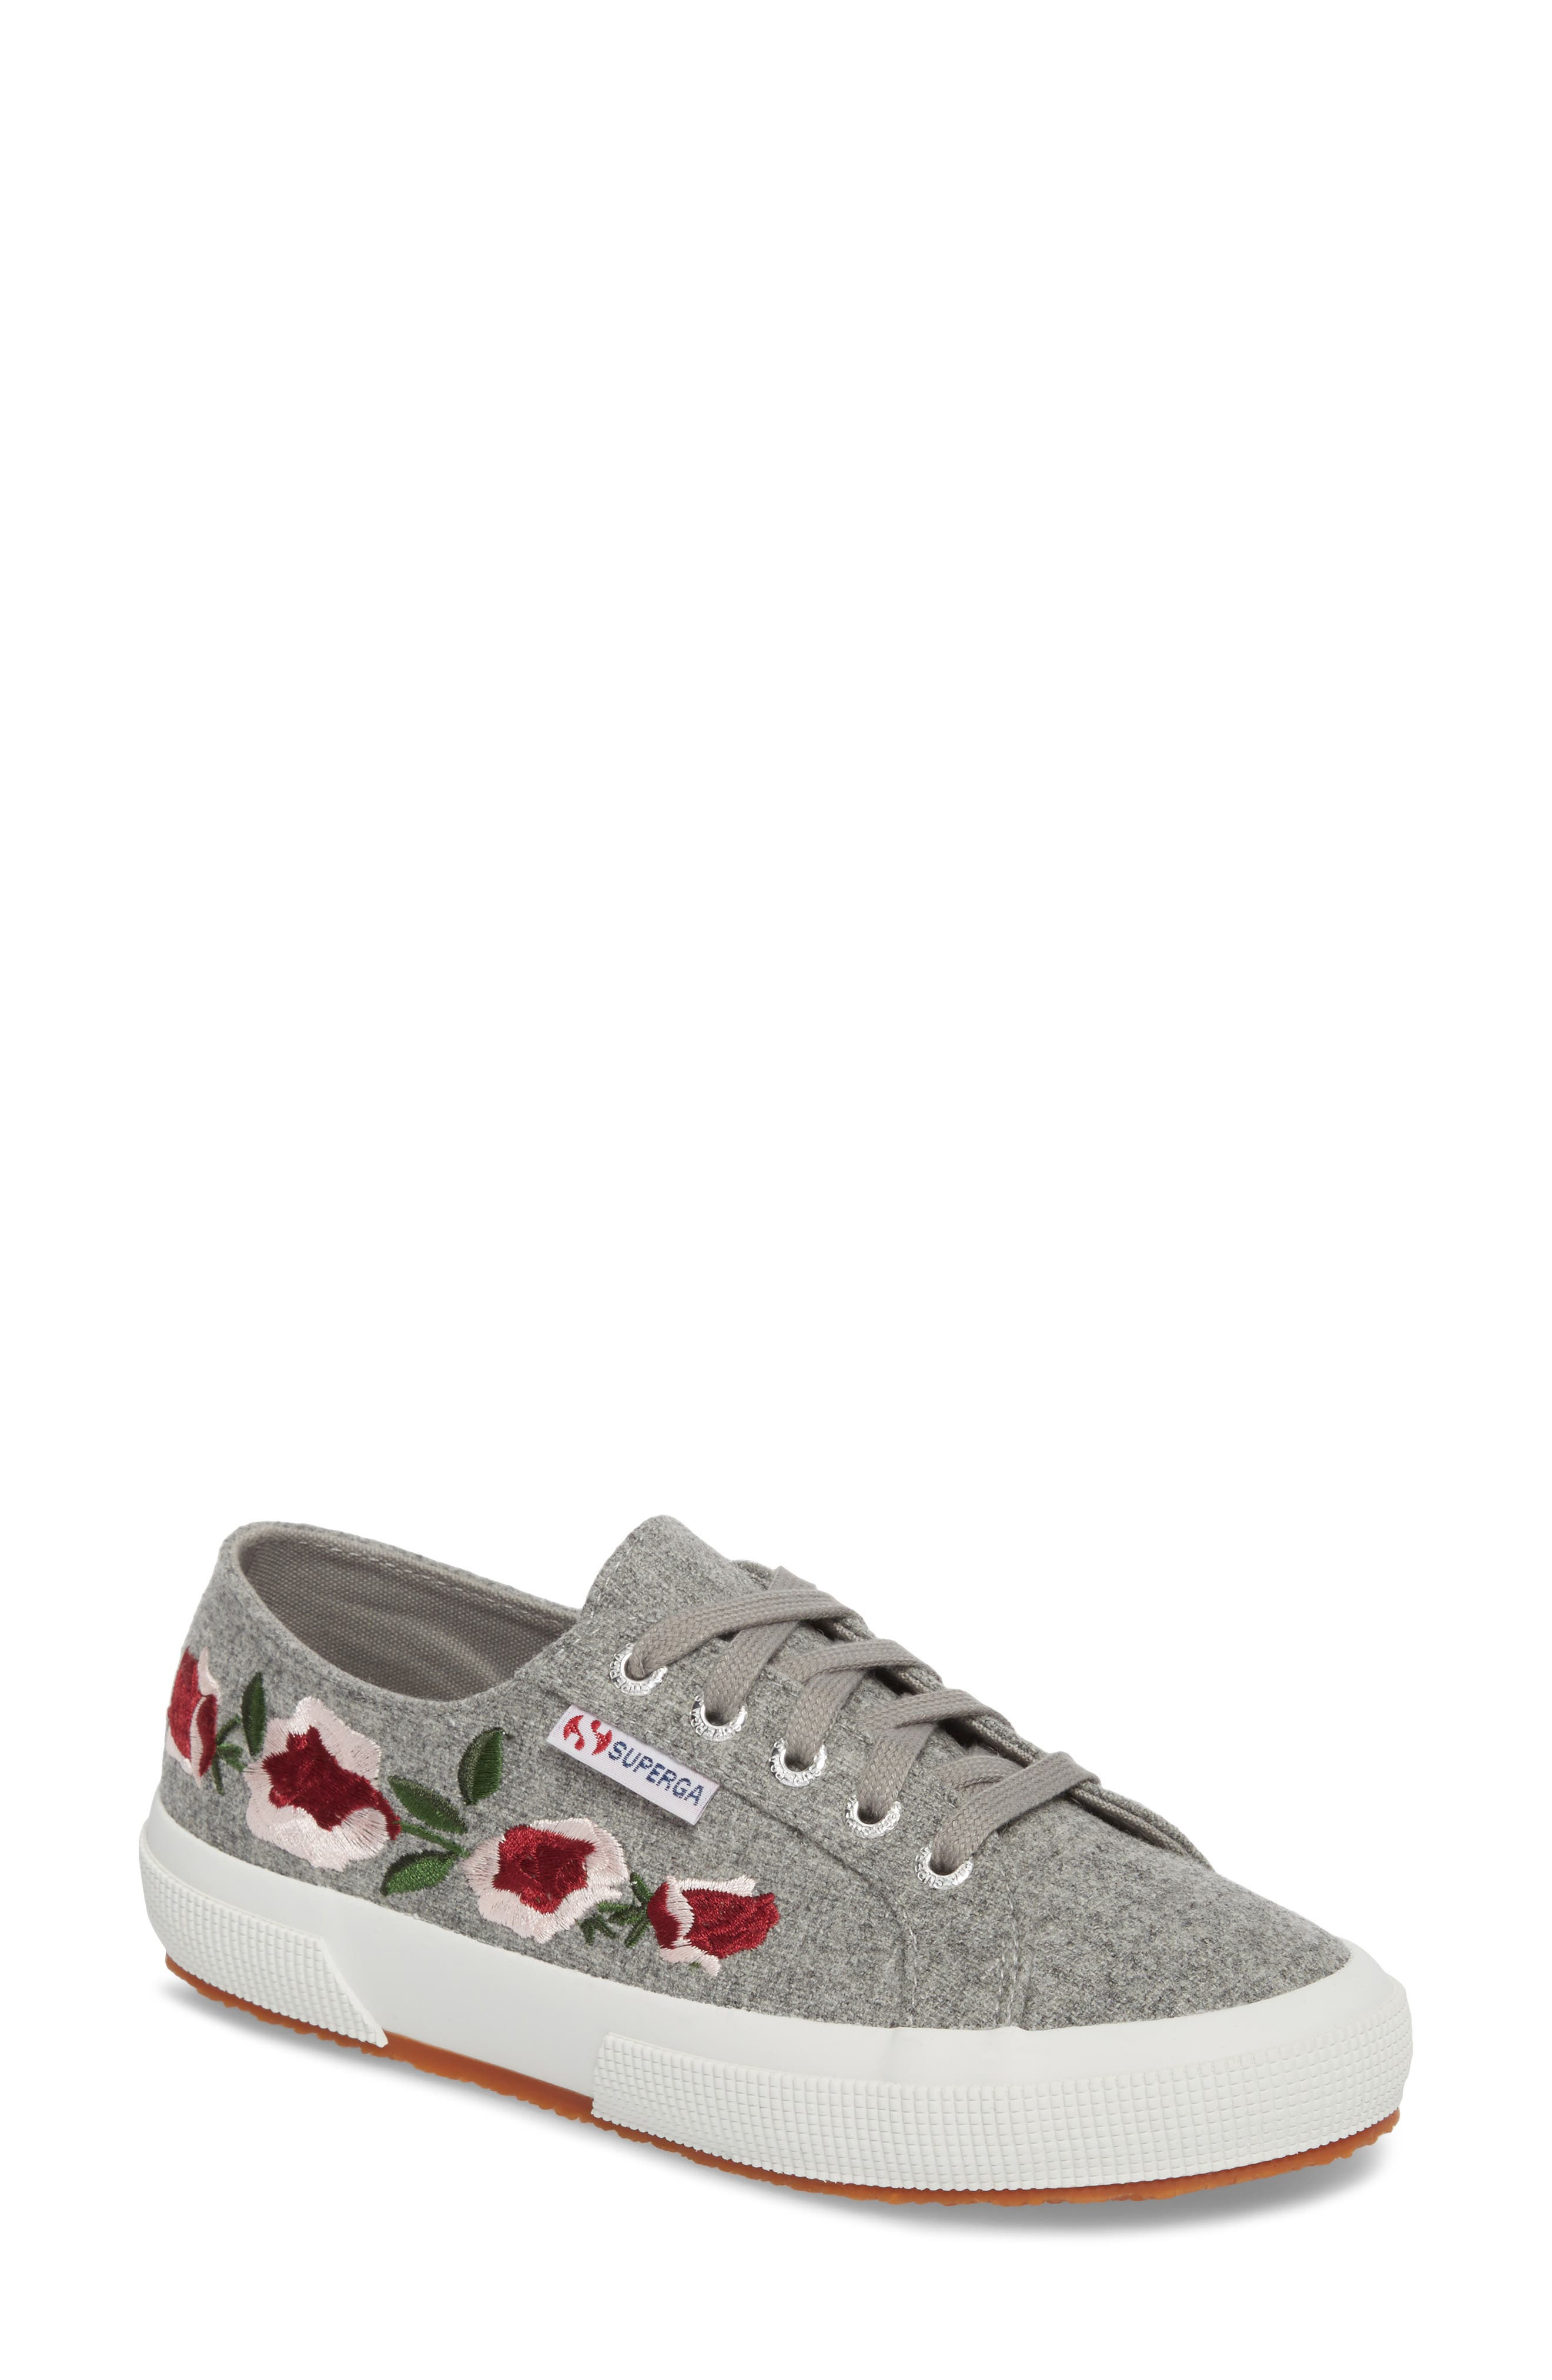 2750 Embroidered Sneaker,                         Main,                         color, 022